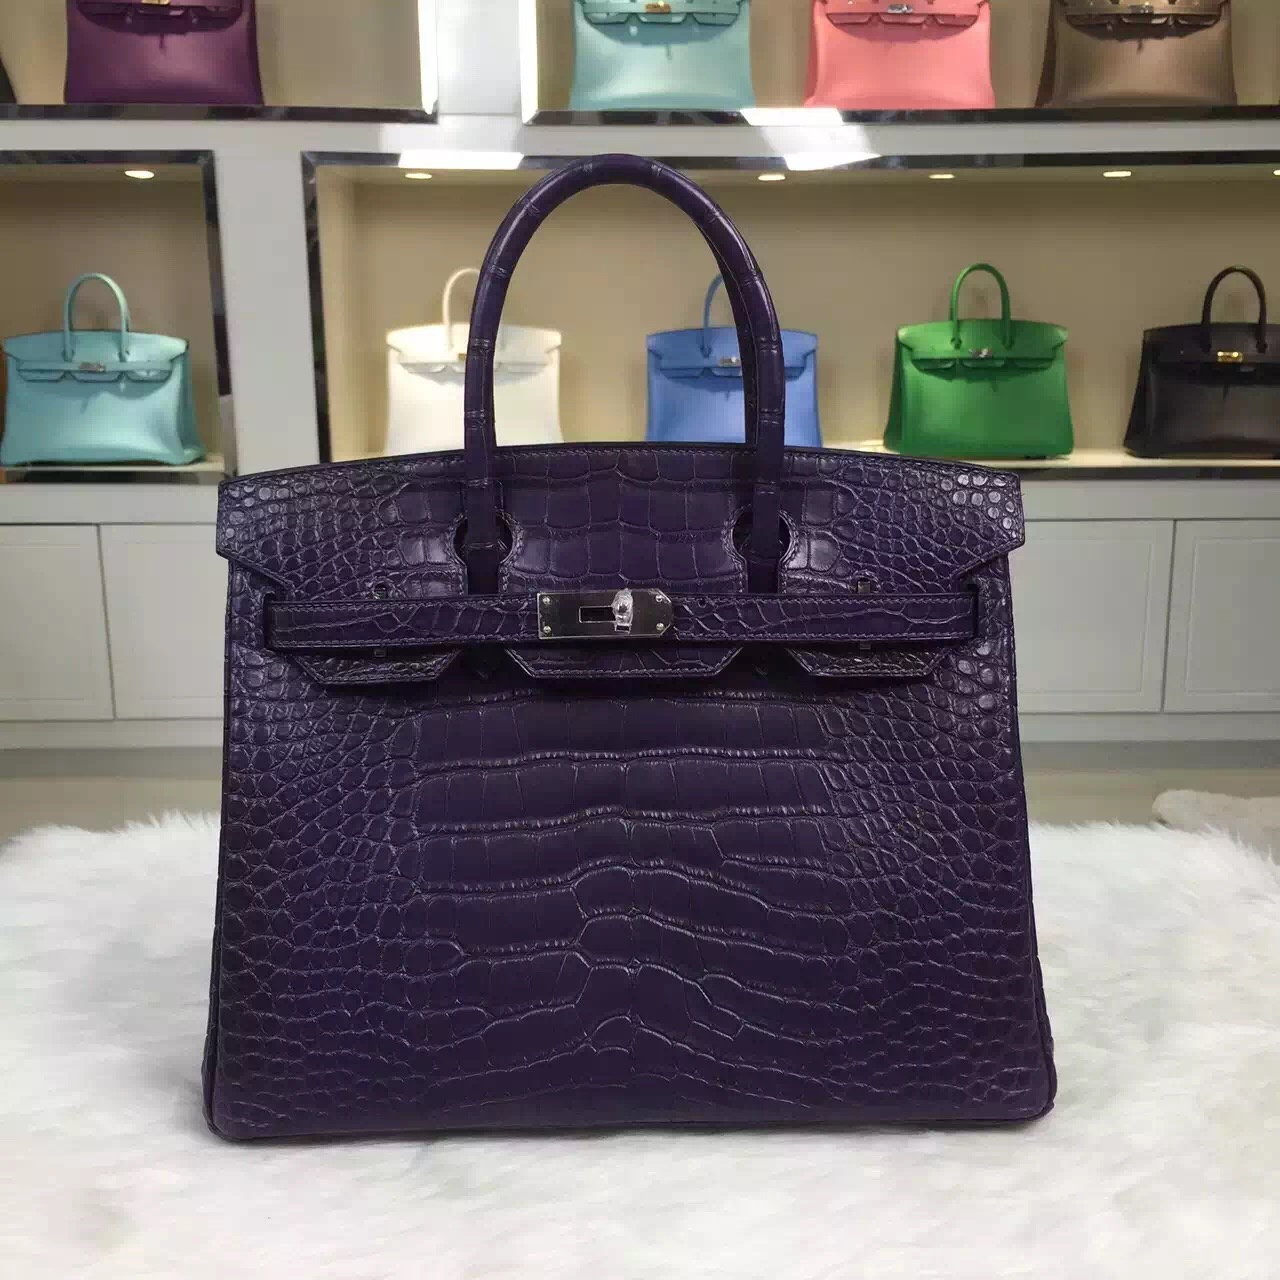 c853c8595c66 IMG 8402 IMG 8404 IMG 8405 IMG 8403. Permalink:http   www.birkine.com  wholesale-hermes-black-currant-purple-crocodile-matt-leather-birkin-bag-30cm